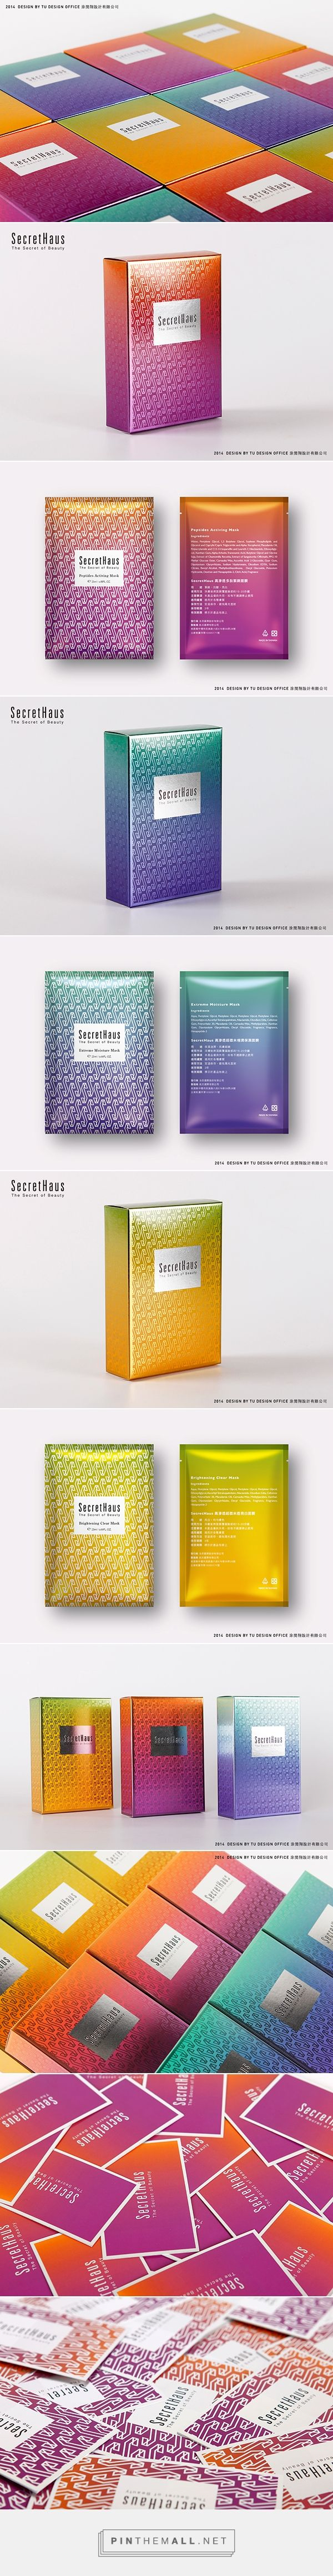 SecretHaus  cosmetic brand   face care PD